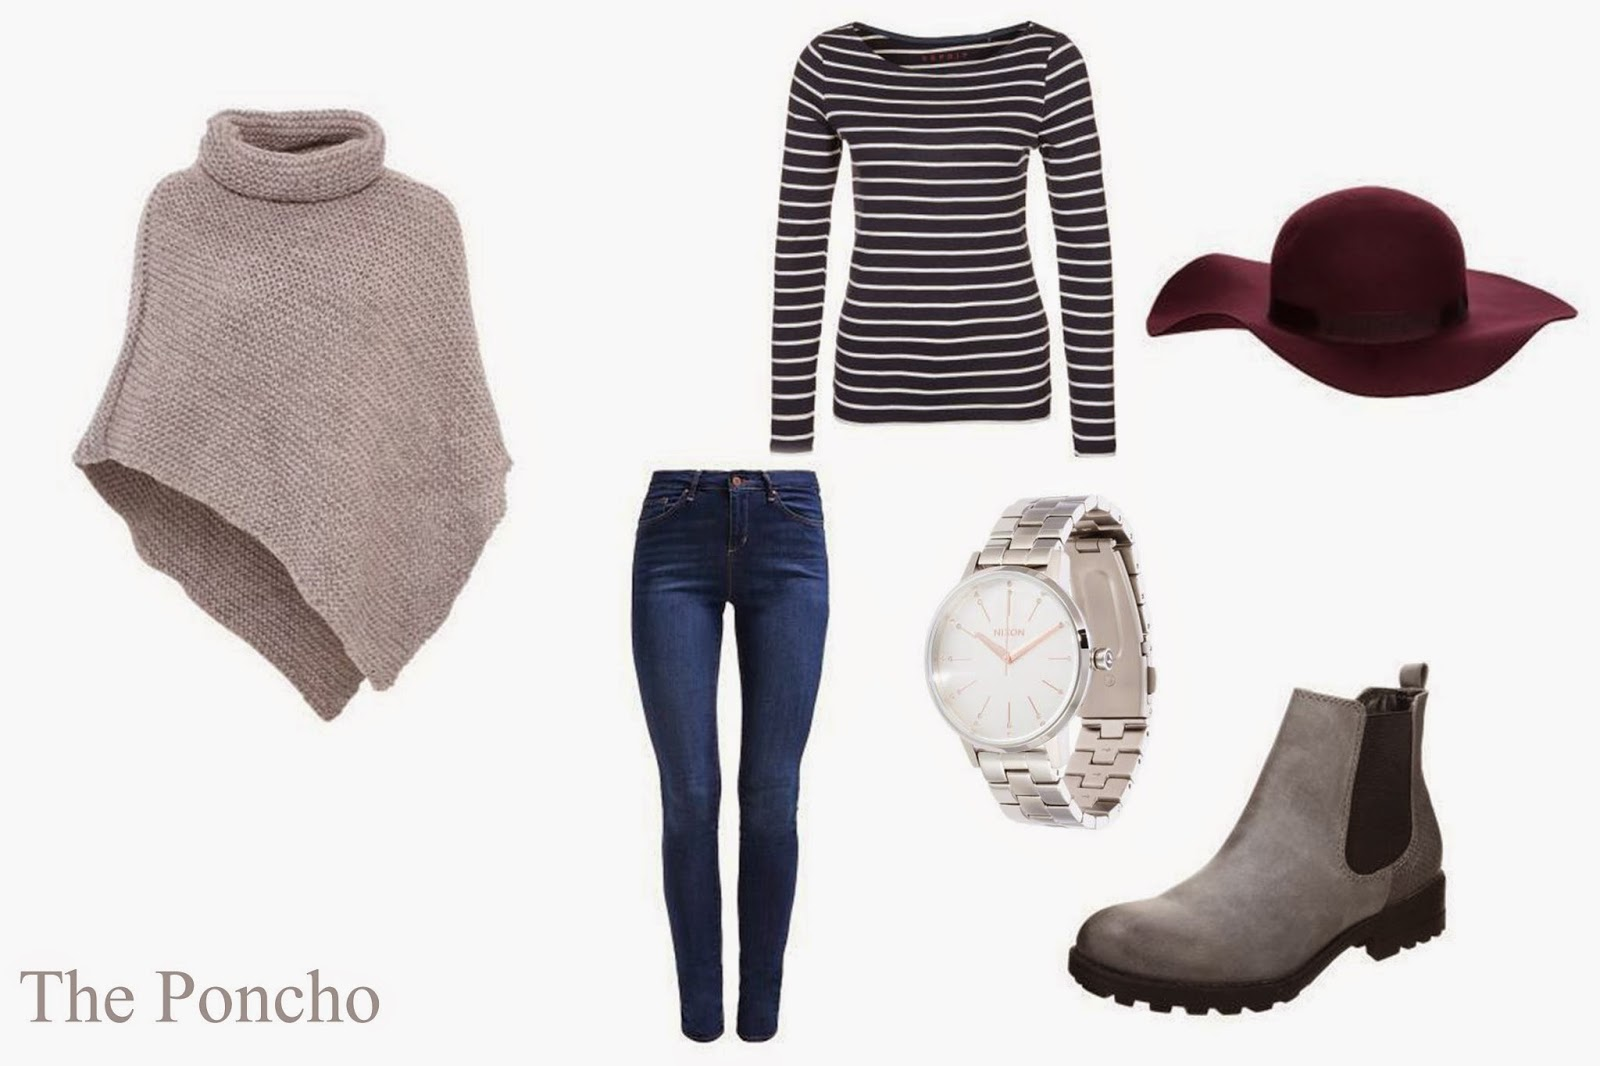 The Poncho